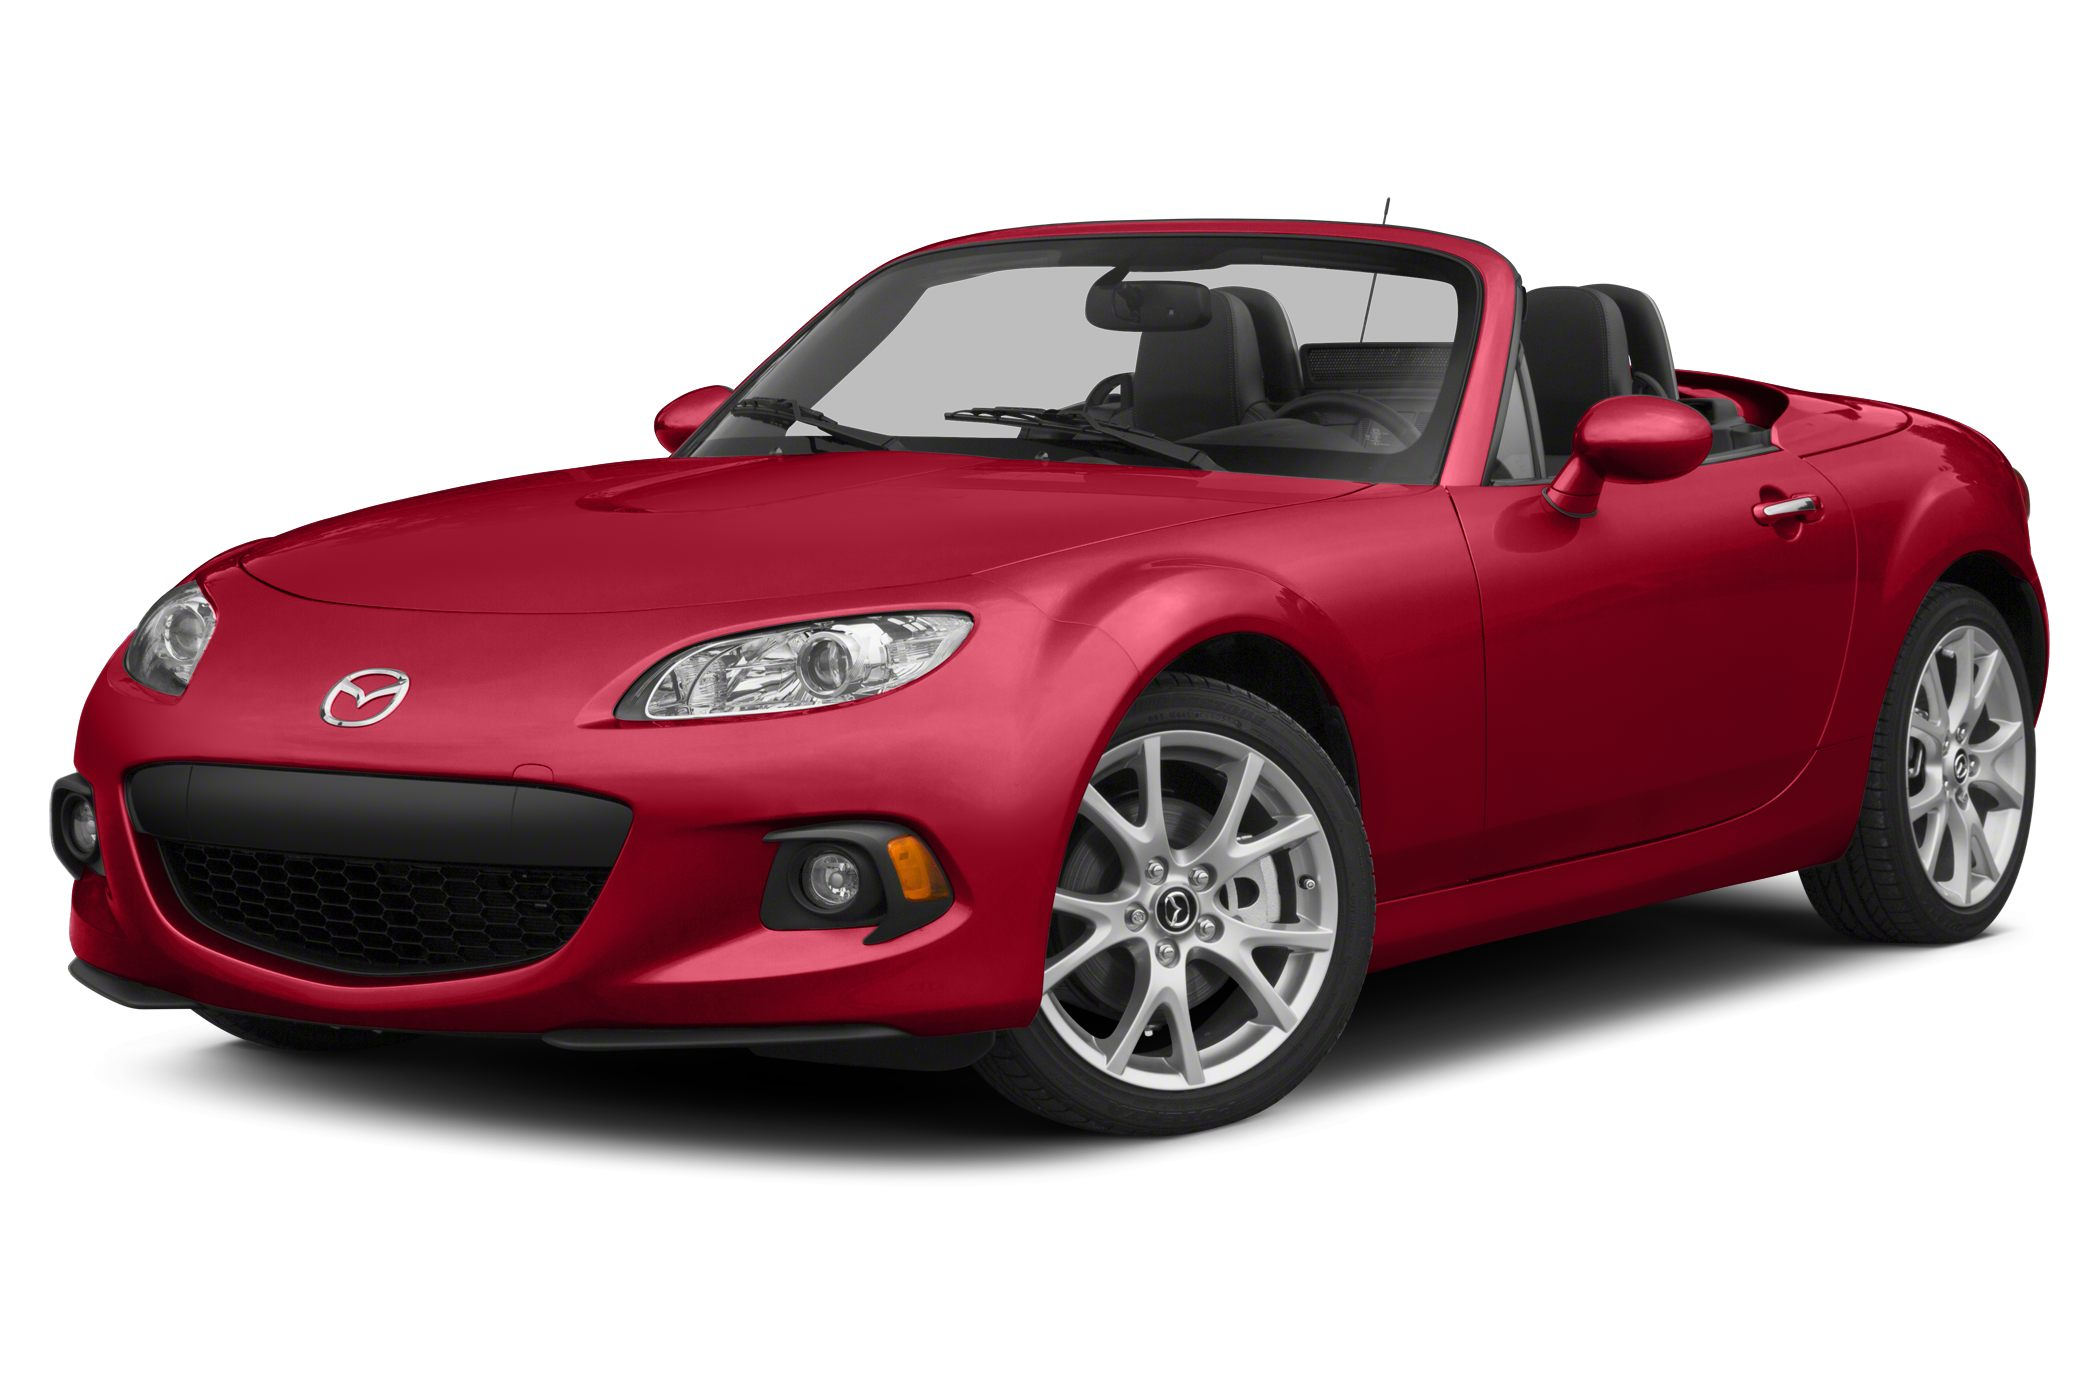 2015 Mazda Miata MX-5 Grand Touring Convertible for sale in Fort Lauderdale for $31,475 with 1 miles